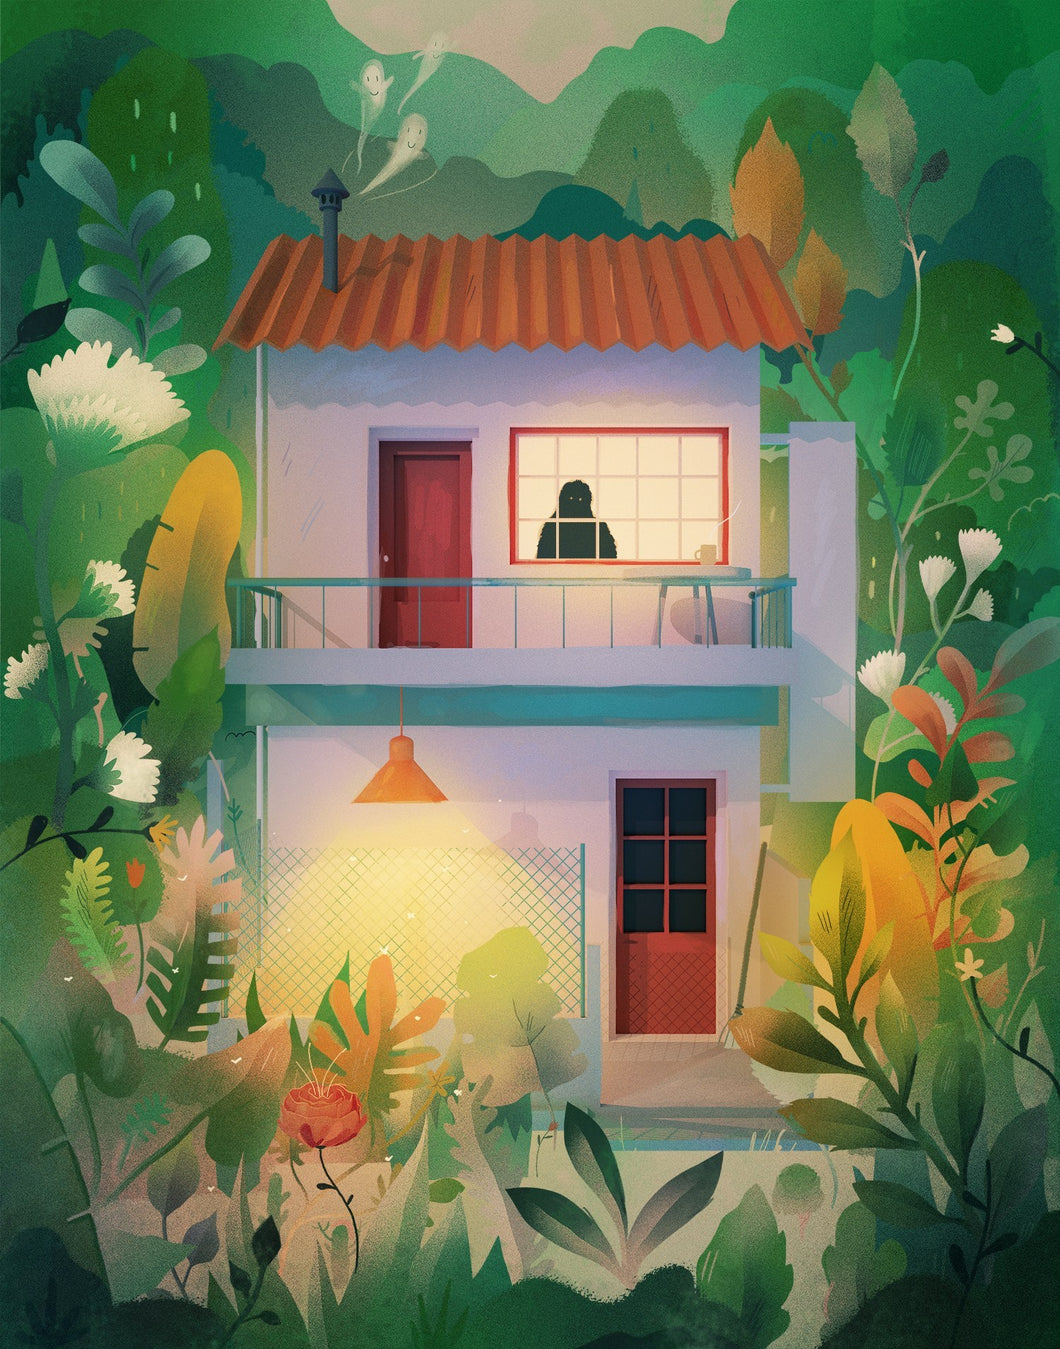 MAISON DANS LA JUNGLE - ILLUSTRATION